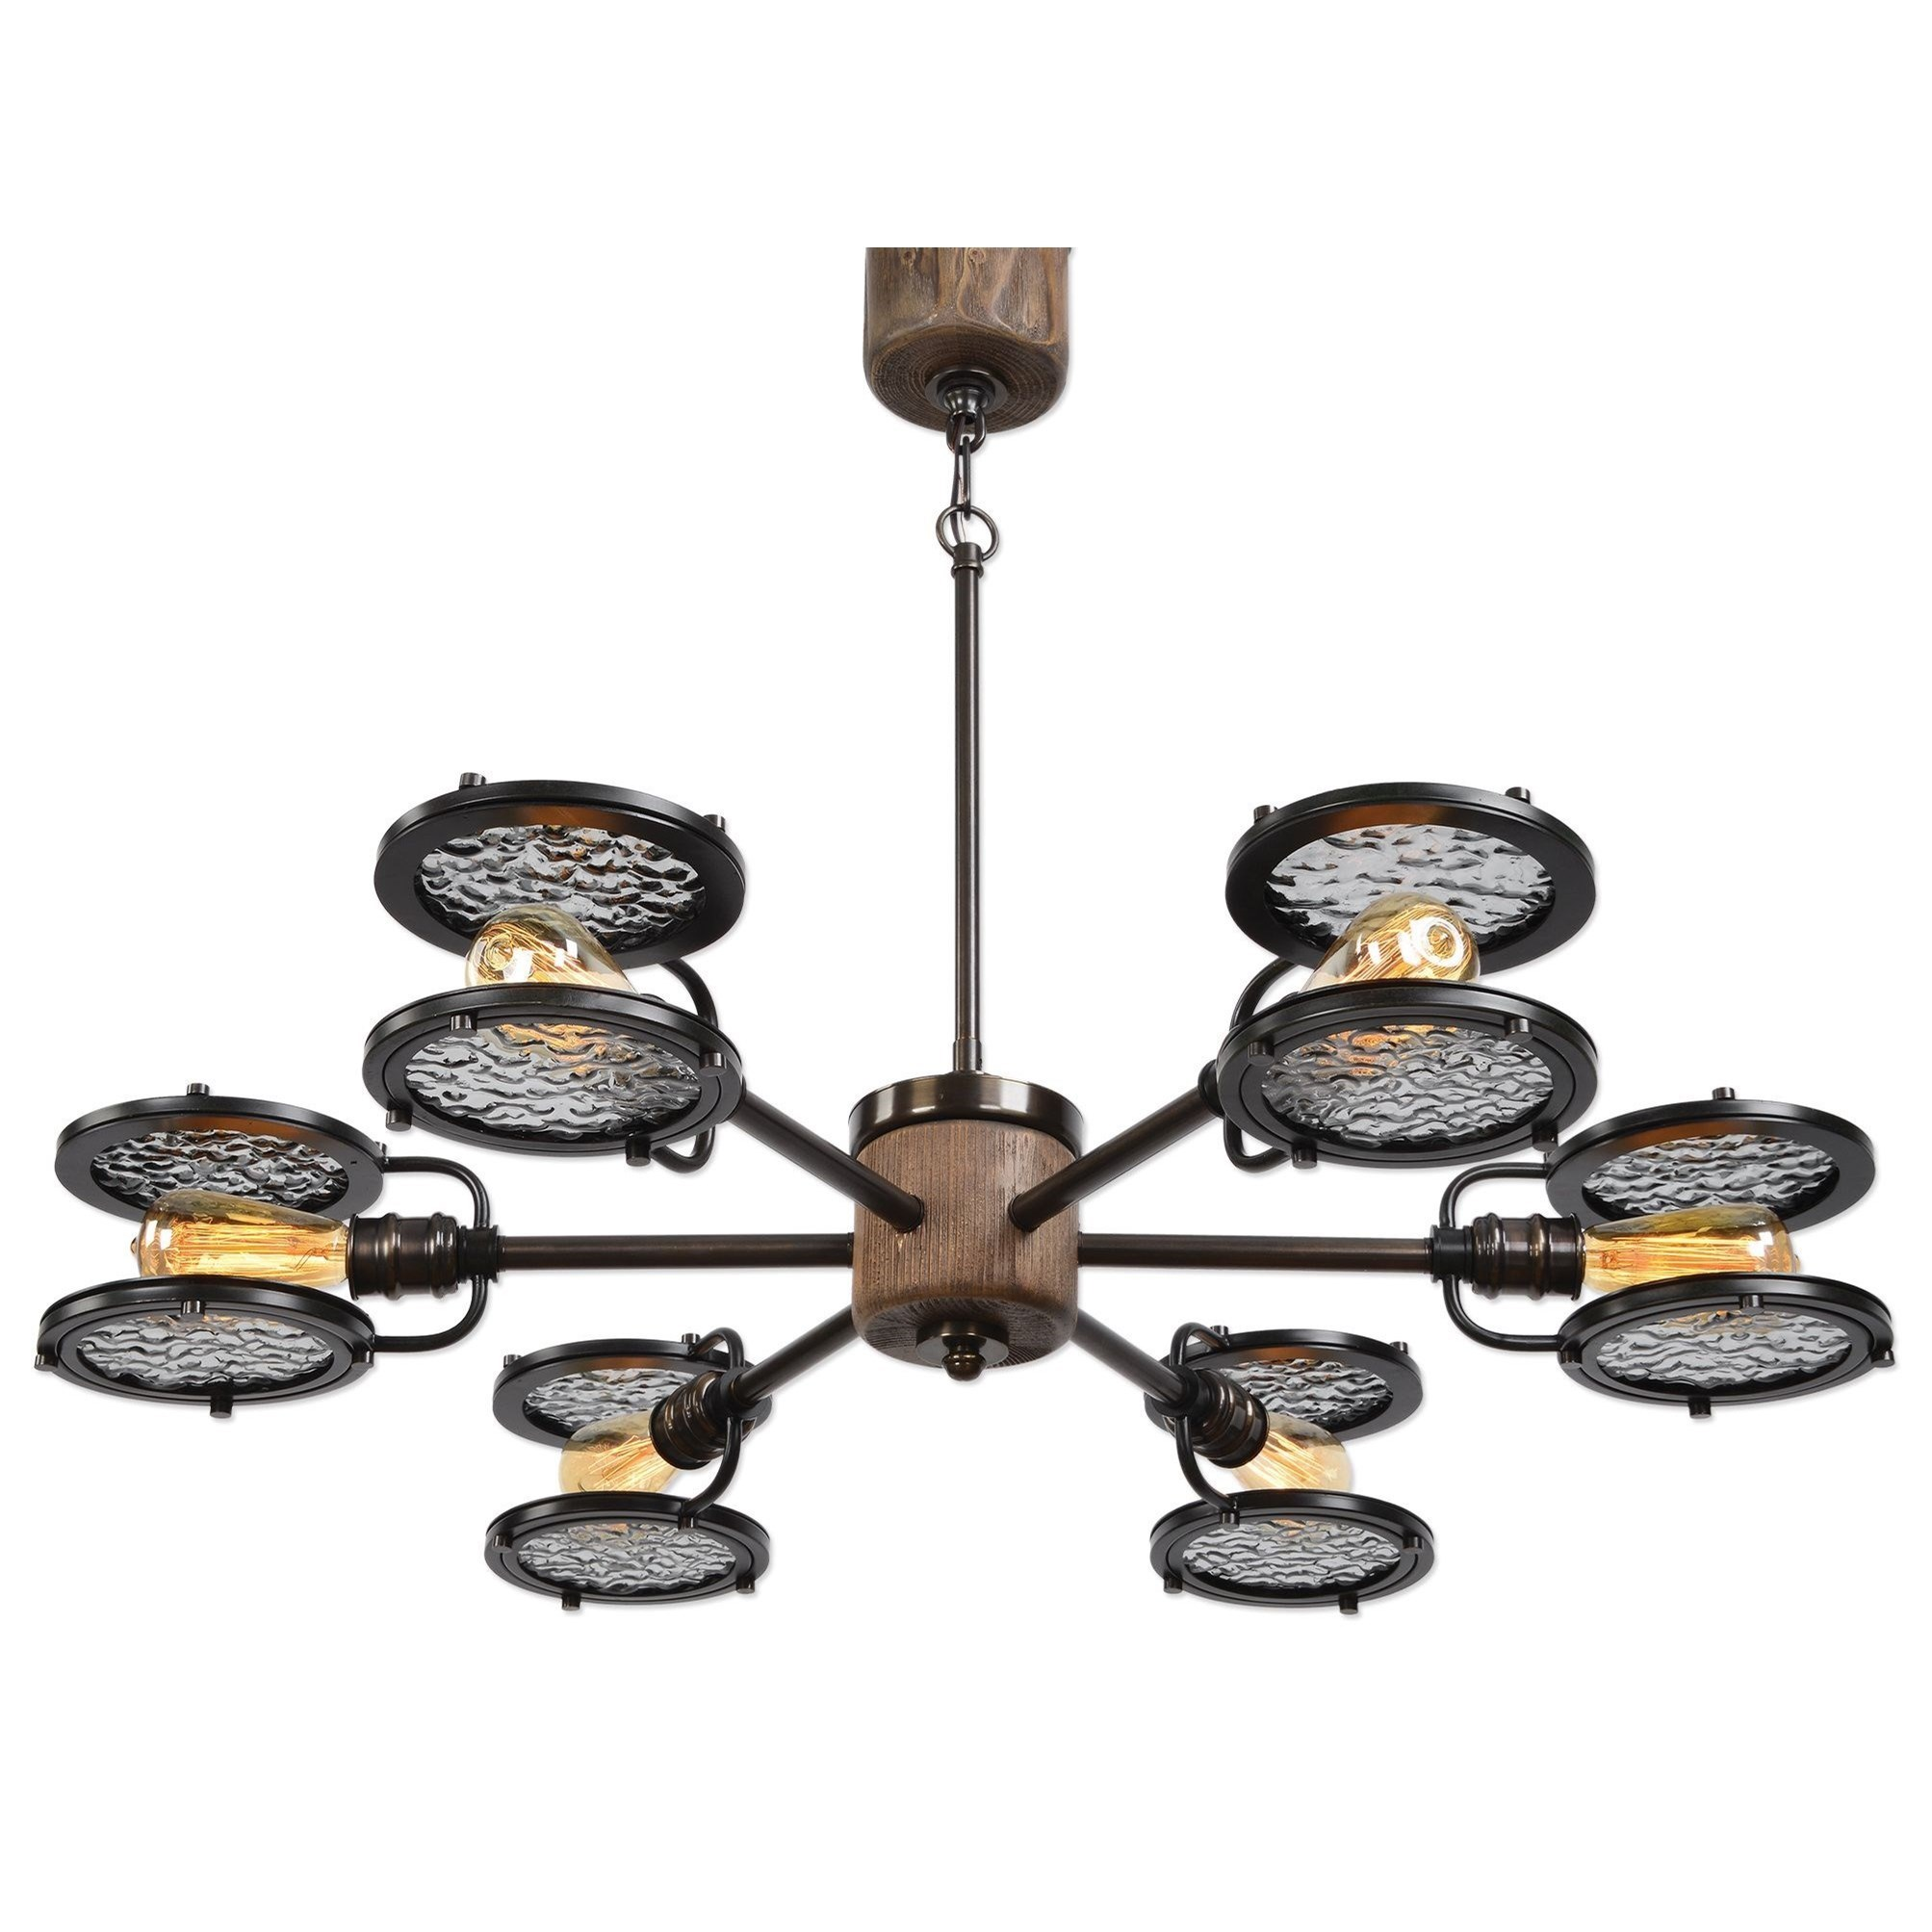 brass lighting fixtures. Uttermost Lighting FixturesGavia 6 Light Dark Brass Chandelier Fixtures L